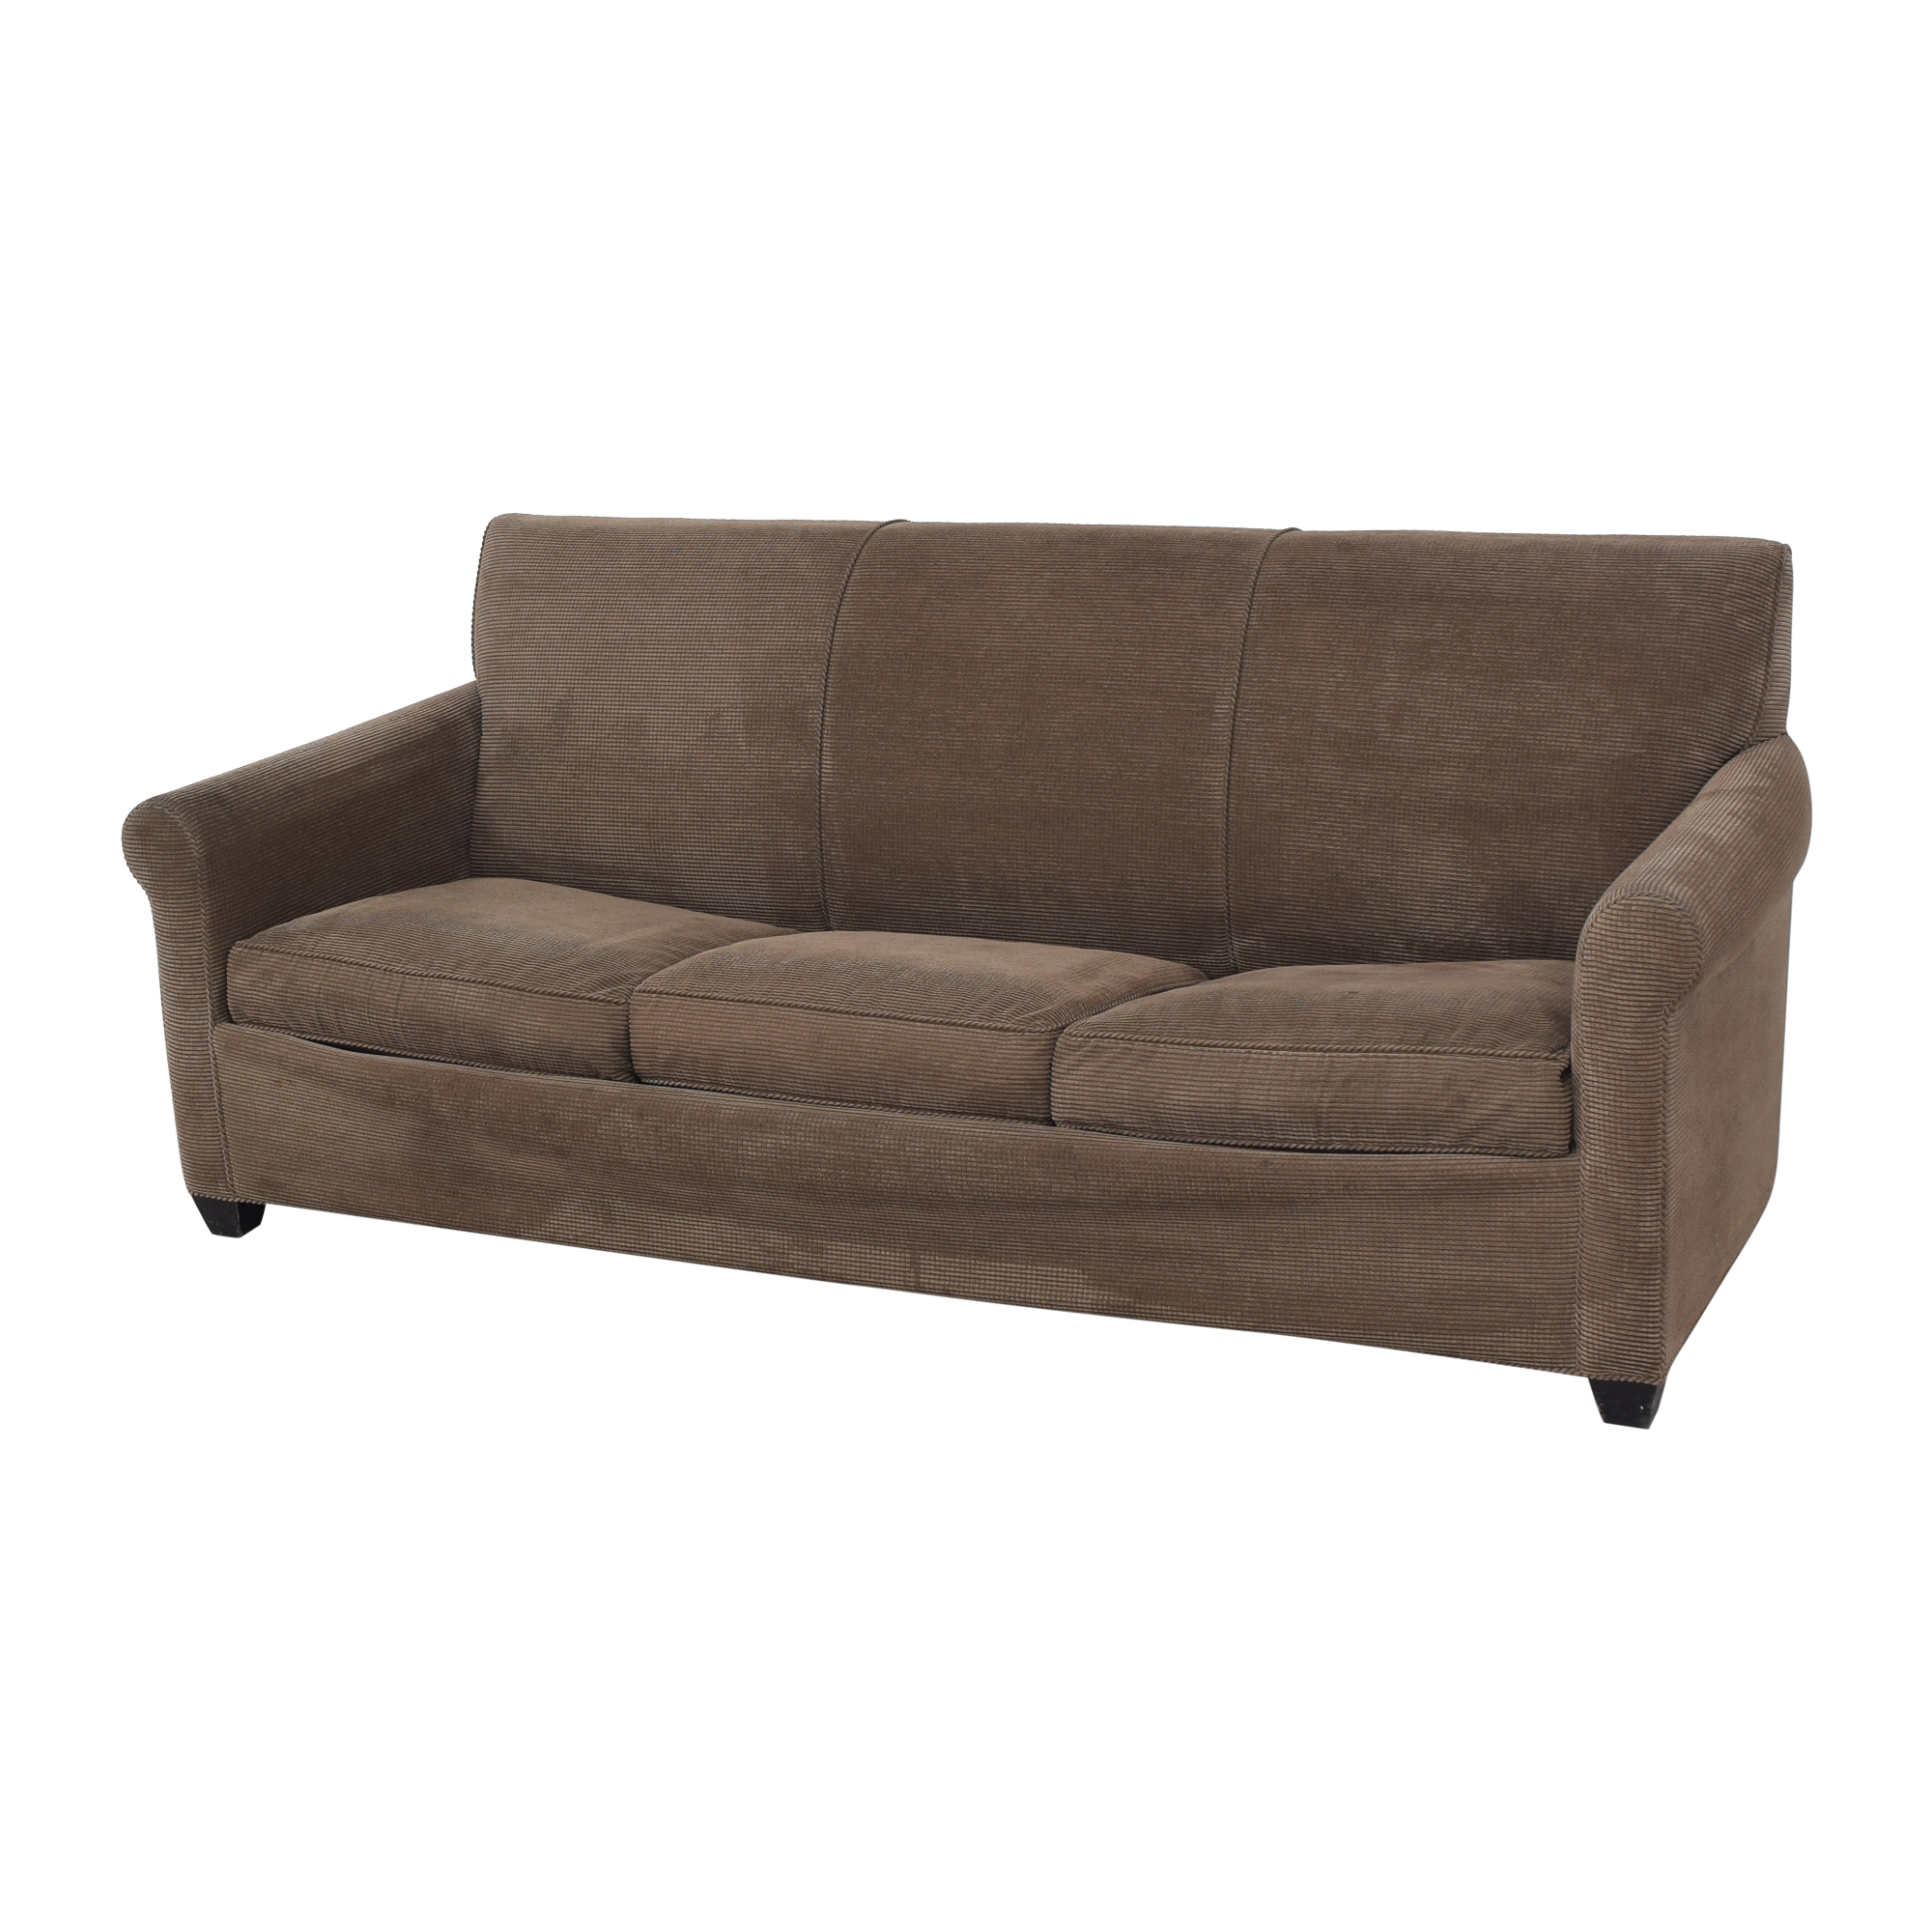 Crate & Barrel Crate & Barrel Sleeper Sofa ma